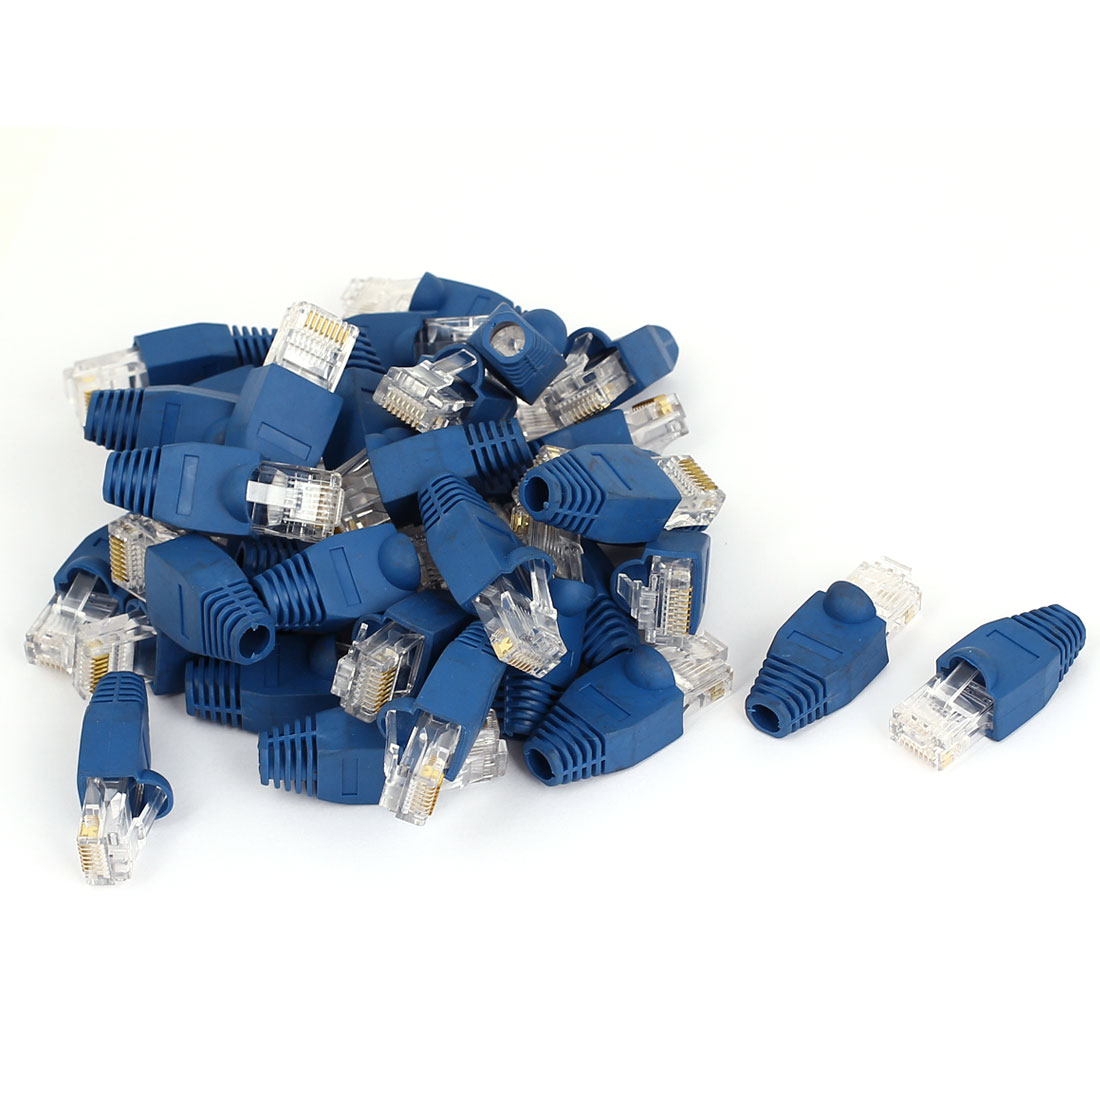 40 Pcs 8P8C RJ45 Contacts Head Shielded Network End Wire Adapter Connectors w Boots Cover Blue